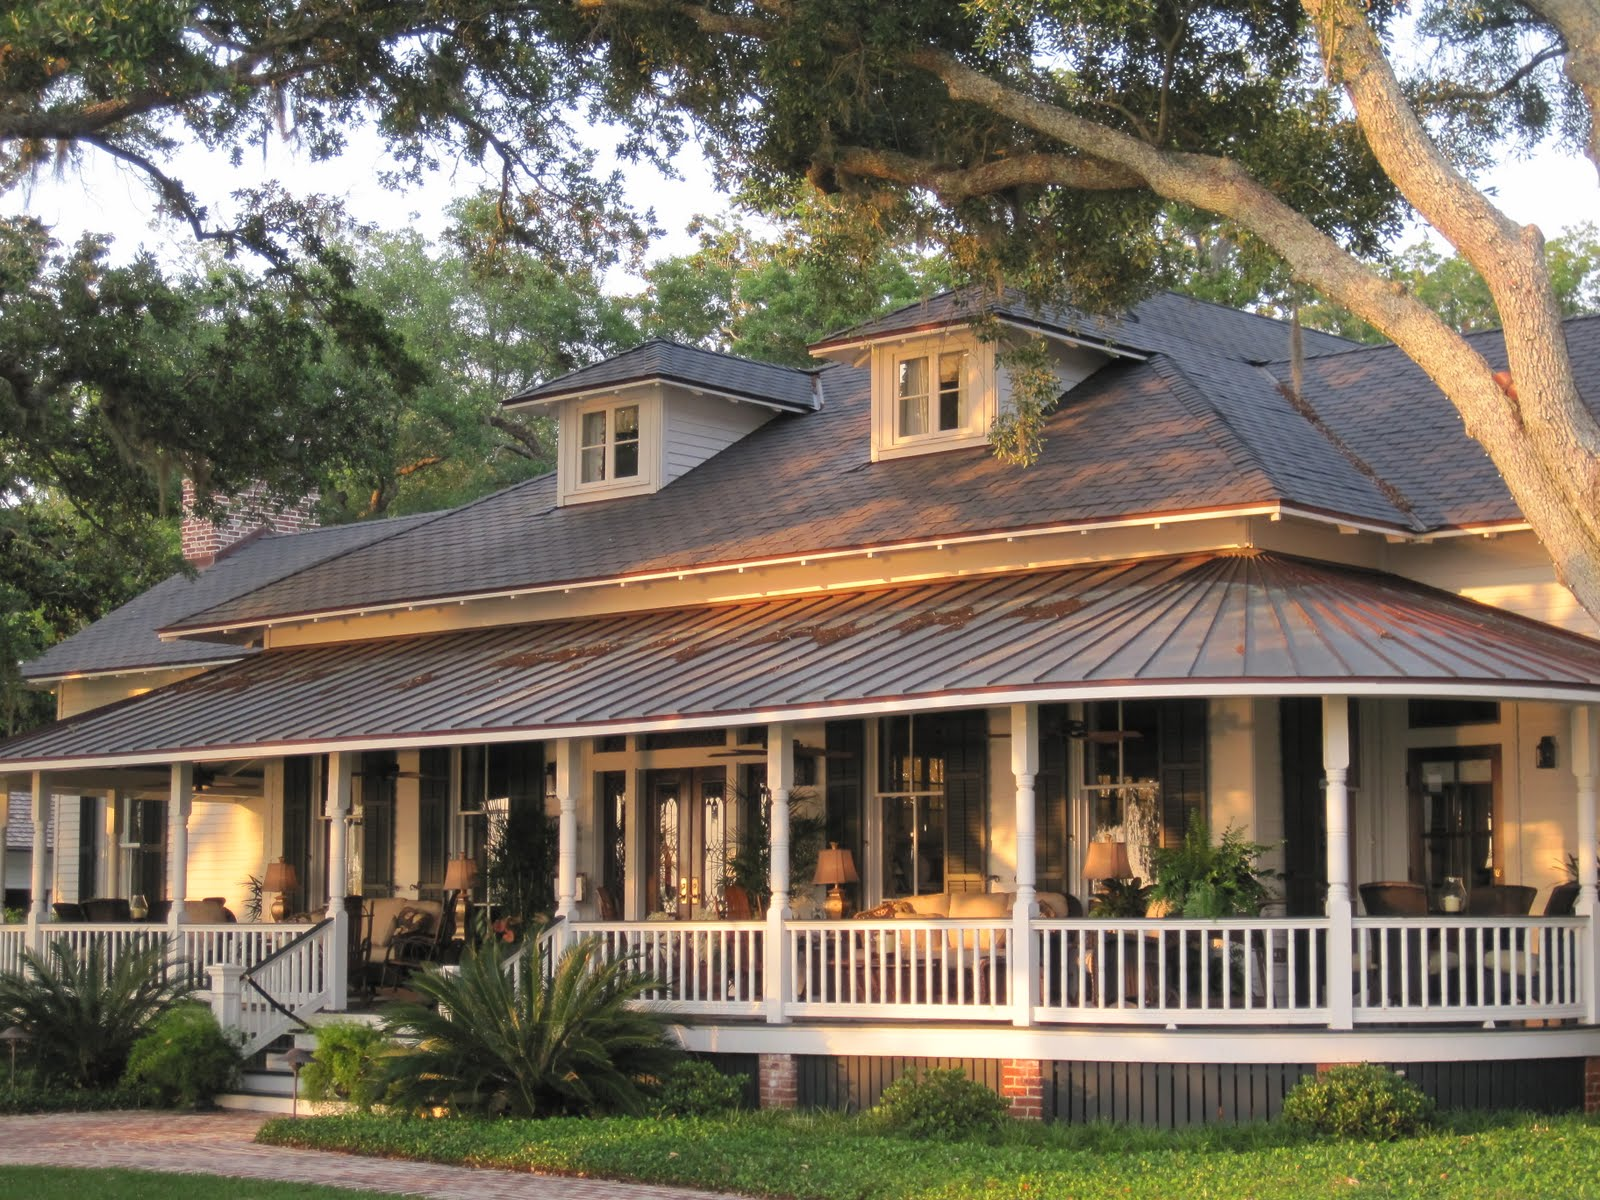 Image of: Brick Houses With Wrap Around Porches